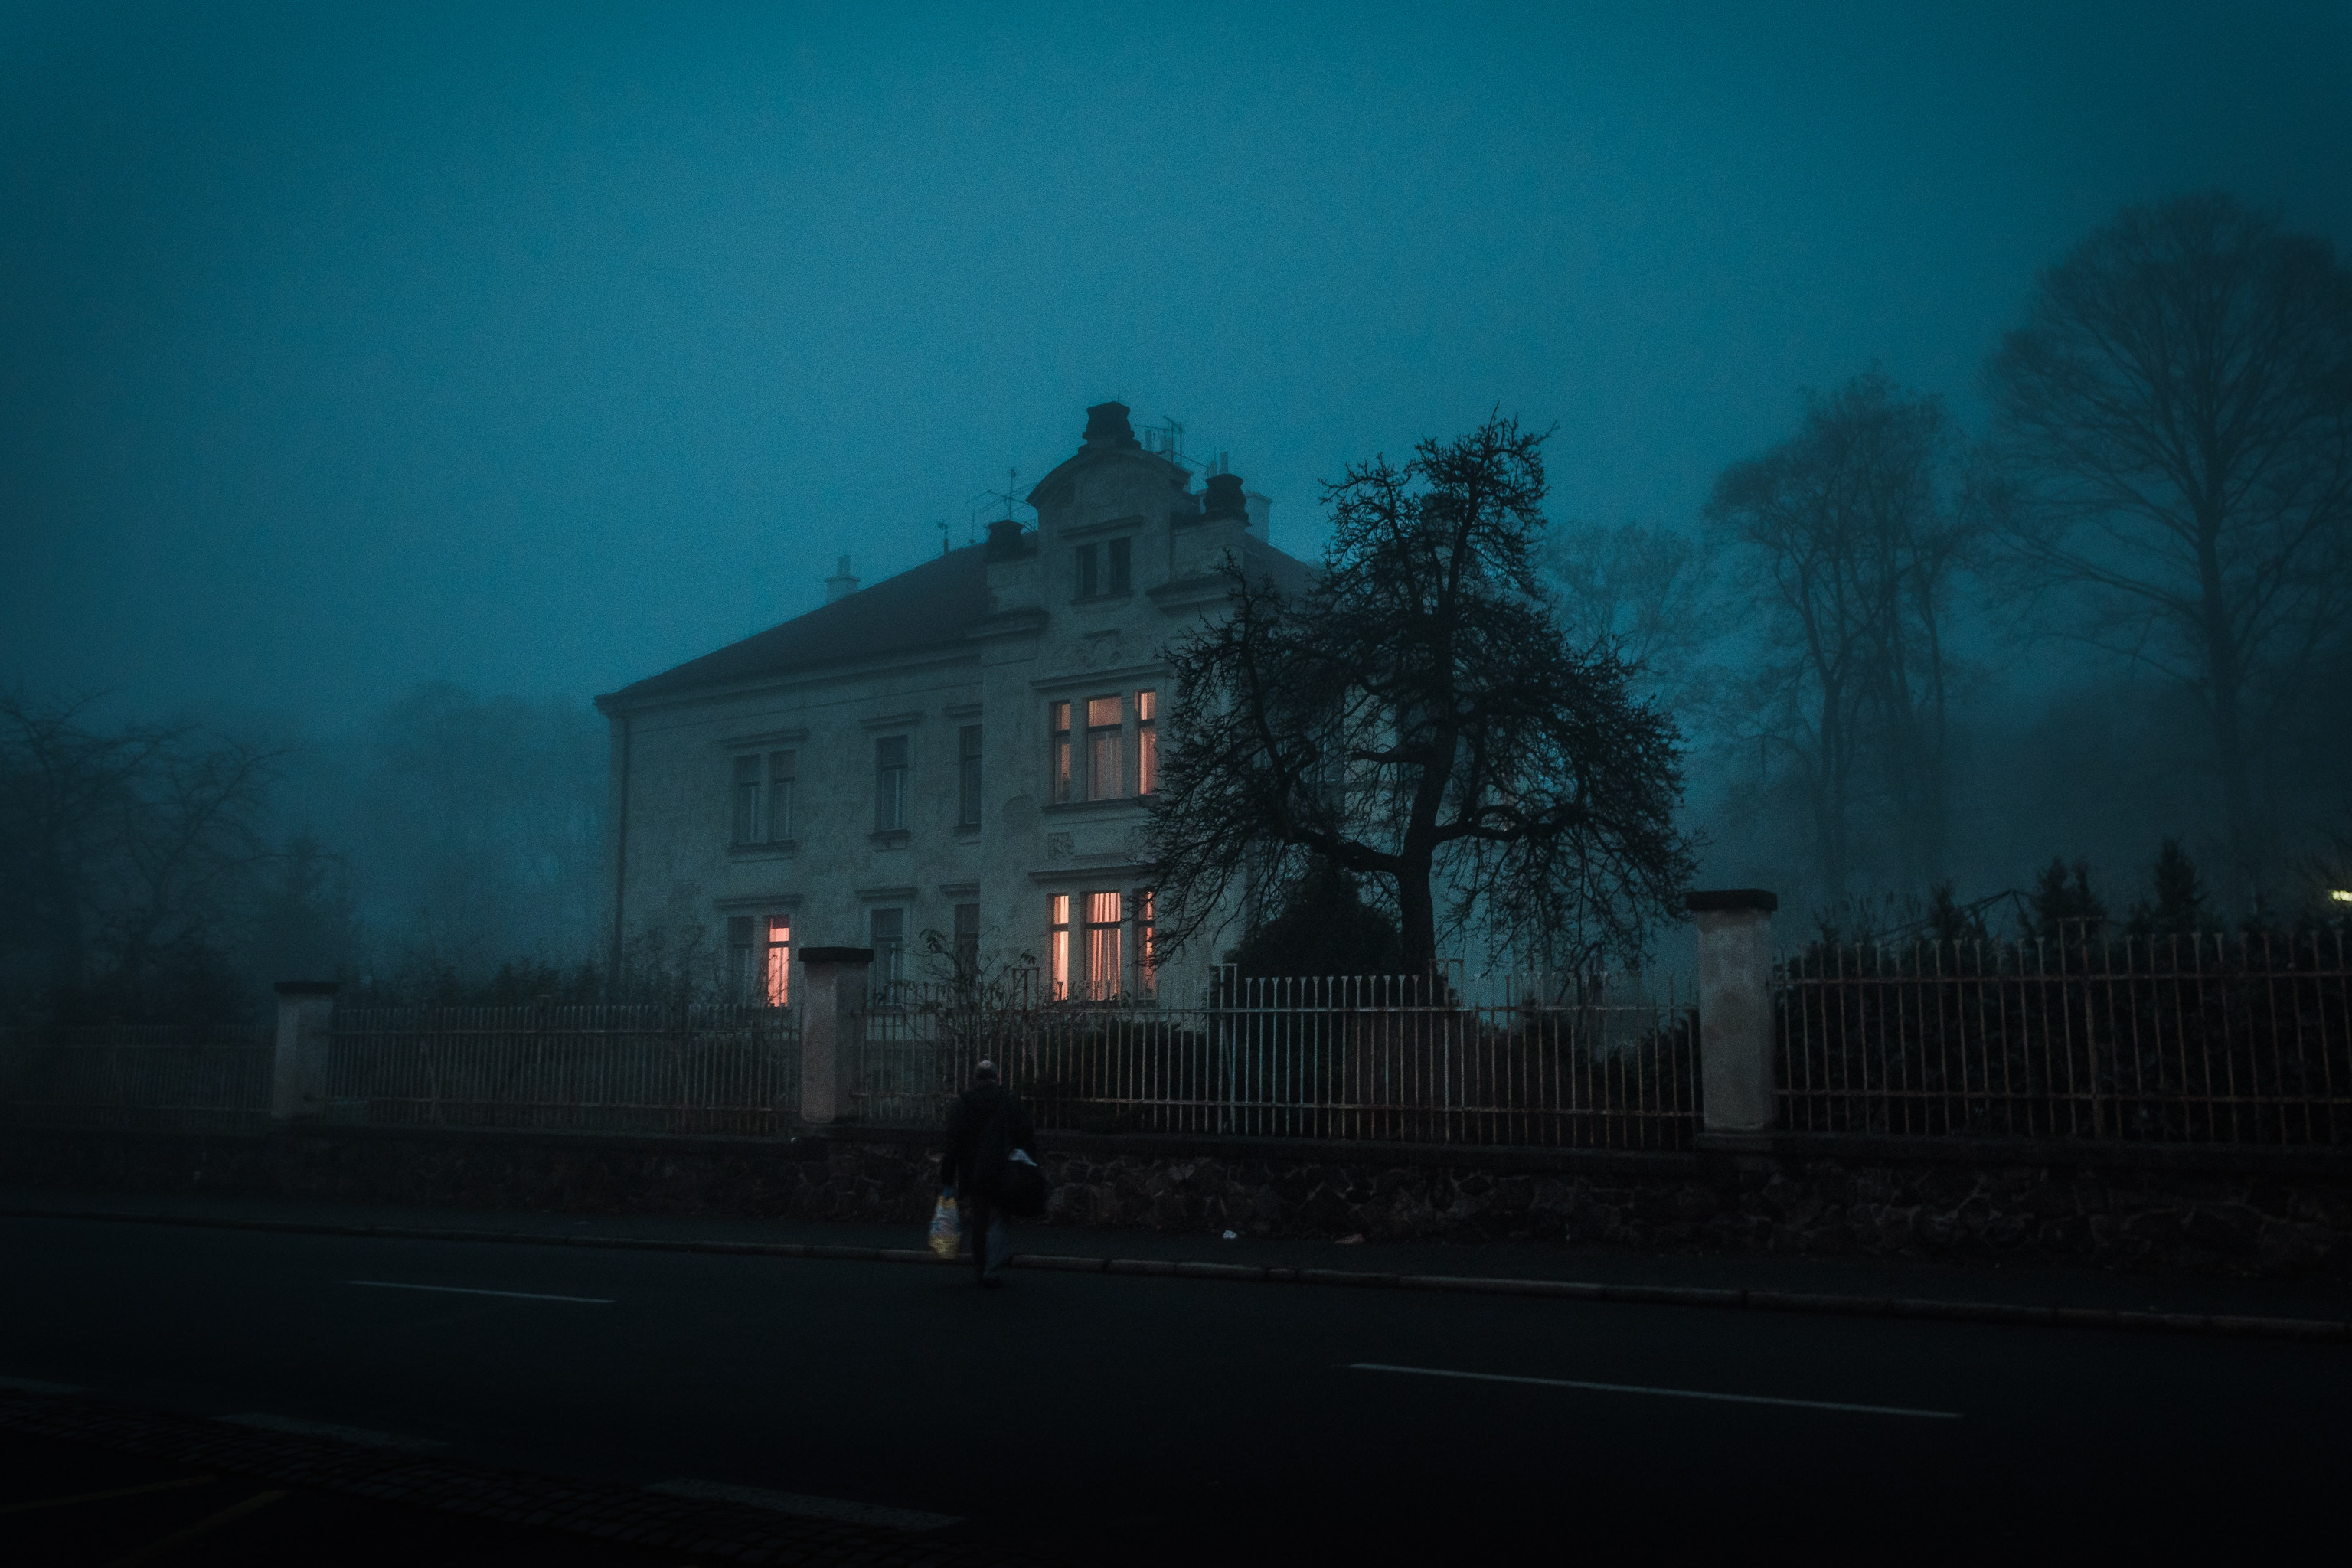 Missing Halloween? A new service brings stories to life and into readers' homes